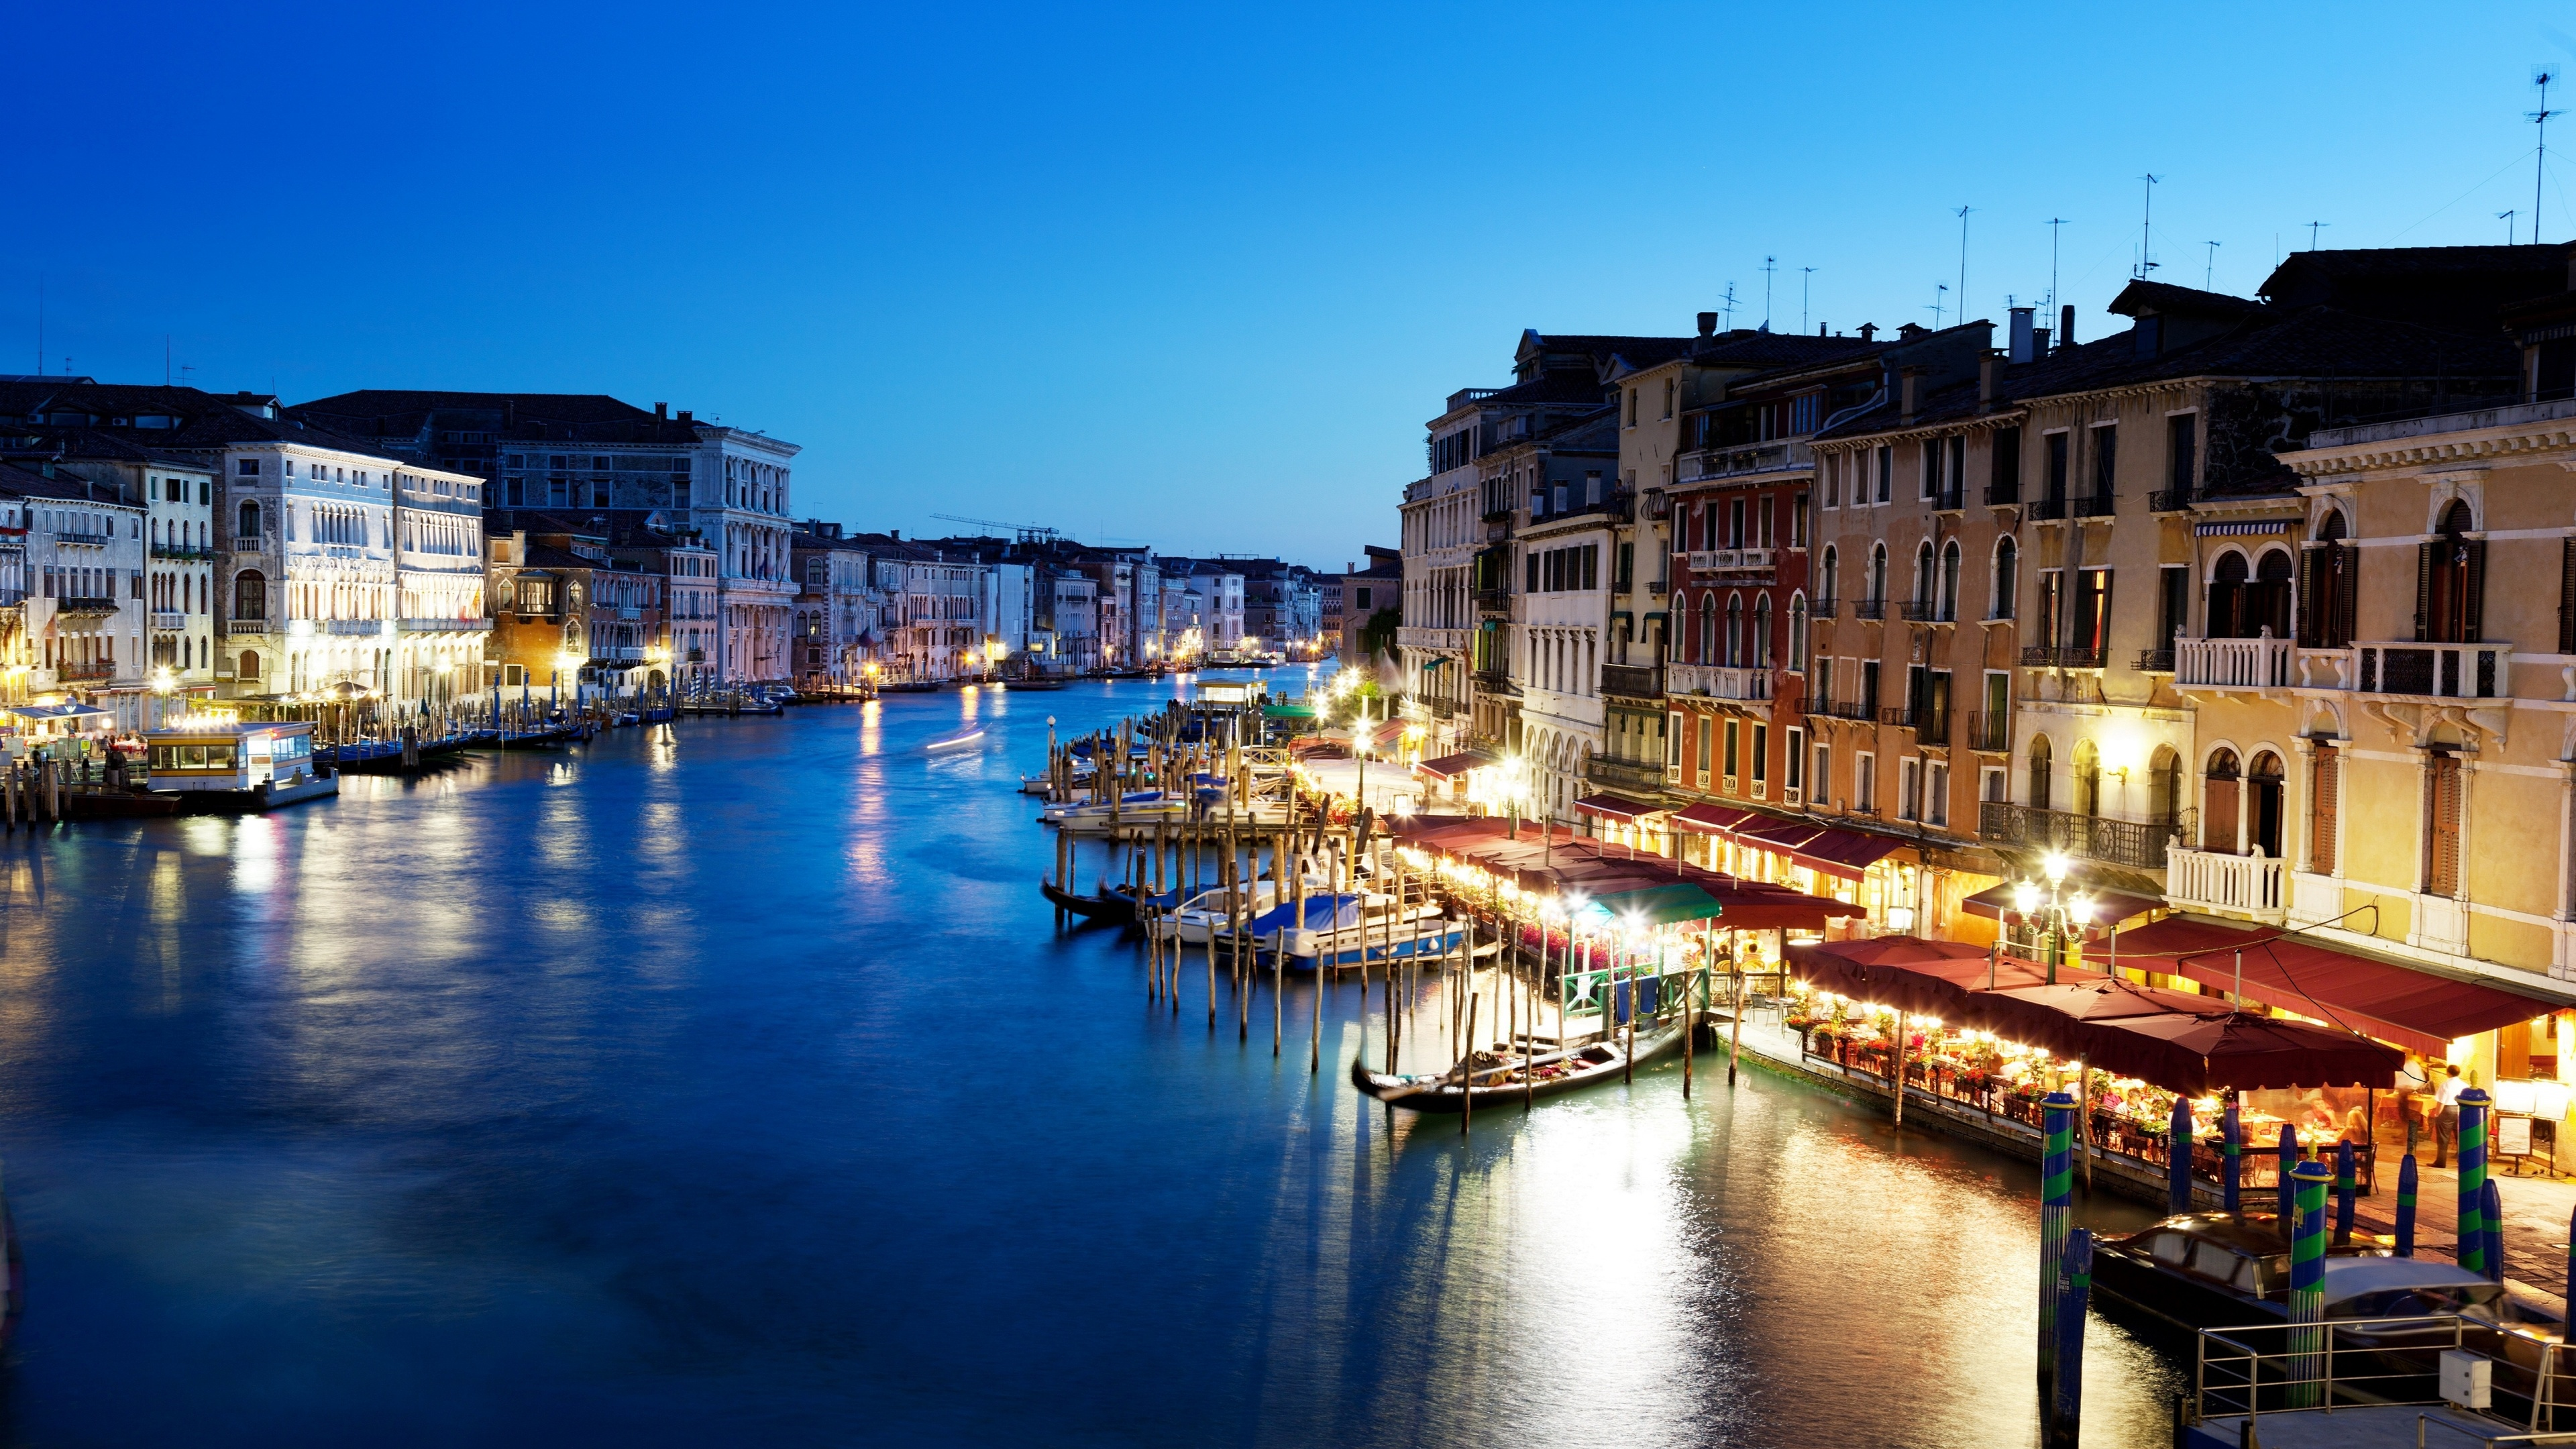 Picture Venice Italy Grand canal Canal Boats Street lights Cities Building Houses